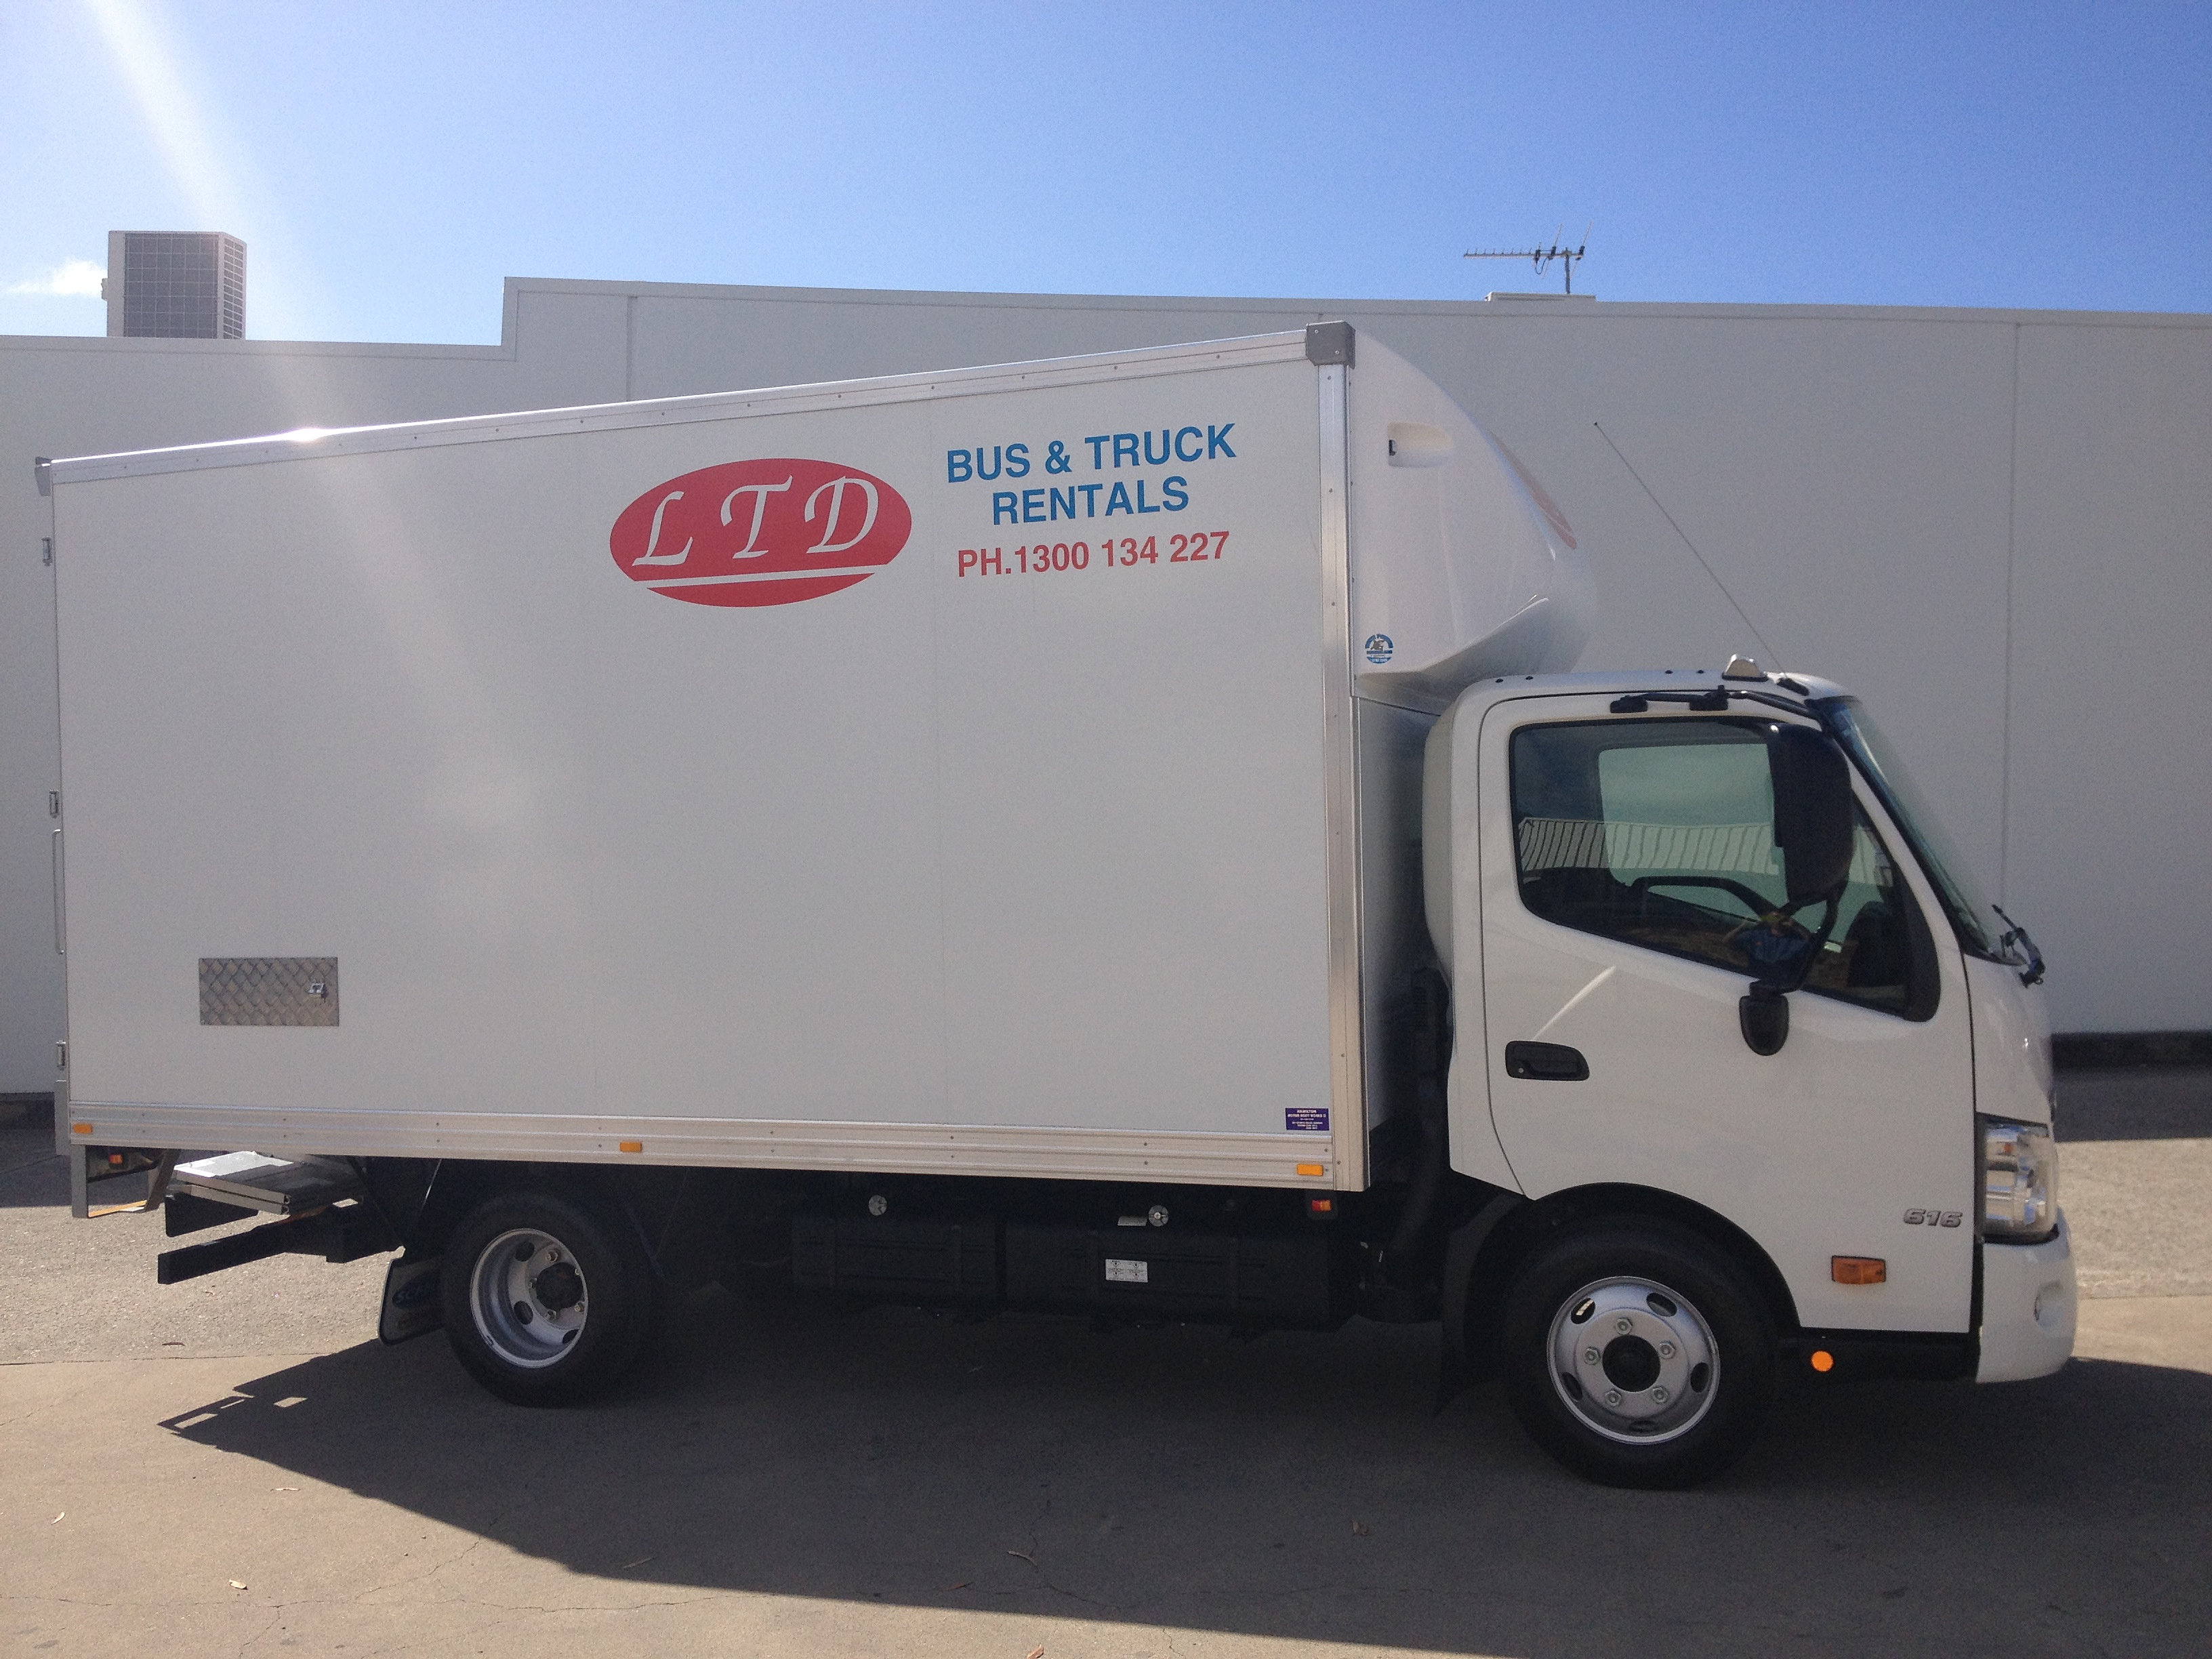 Get quotes for unlimited miles, one way moving truck rental for your long distance move. It's cheaper and convenient to return the truck at destination.